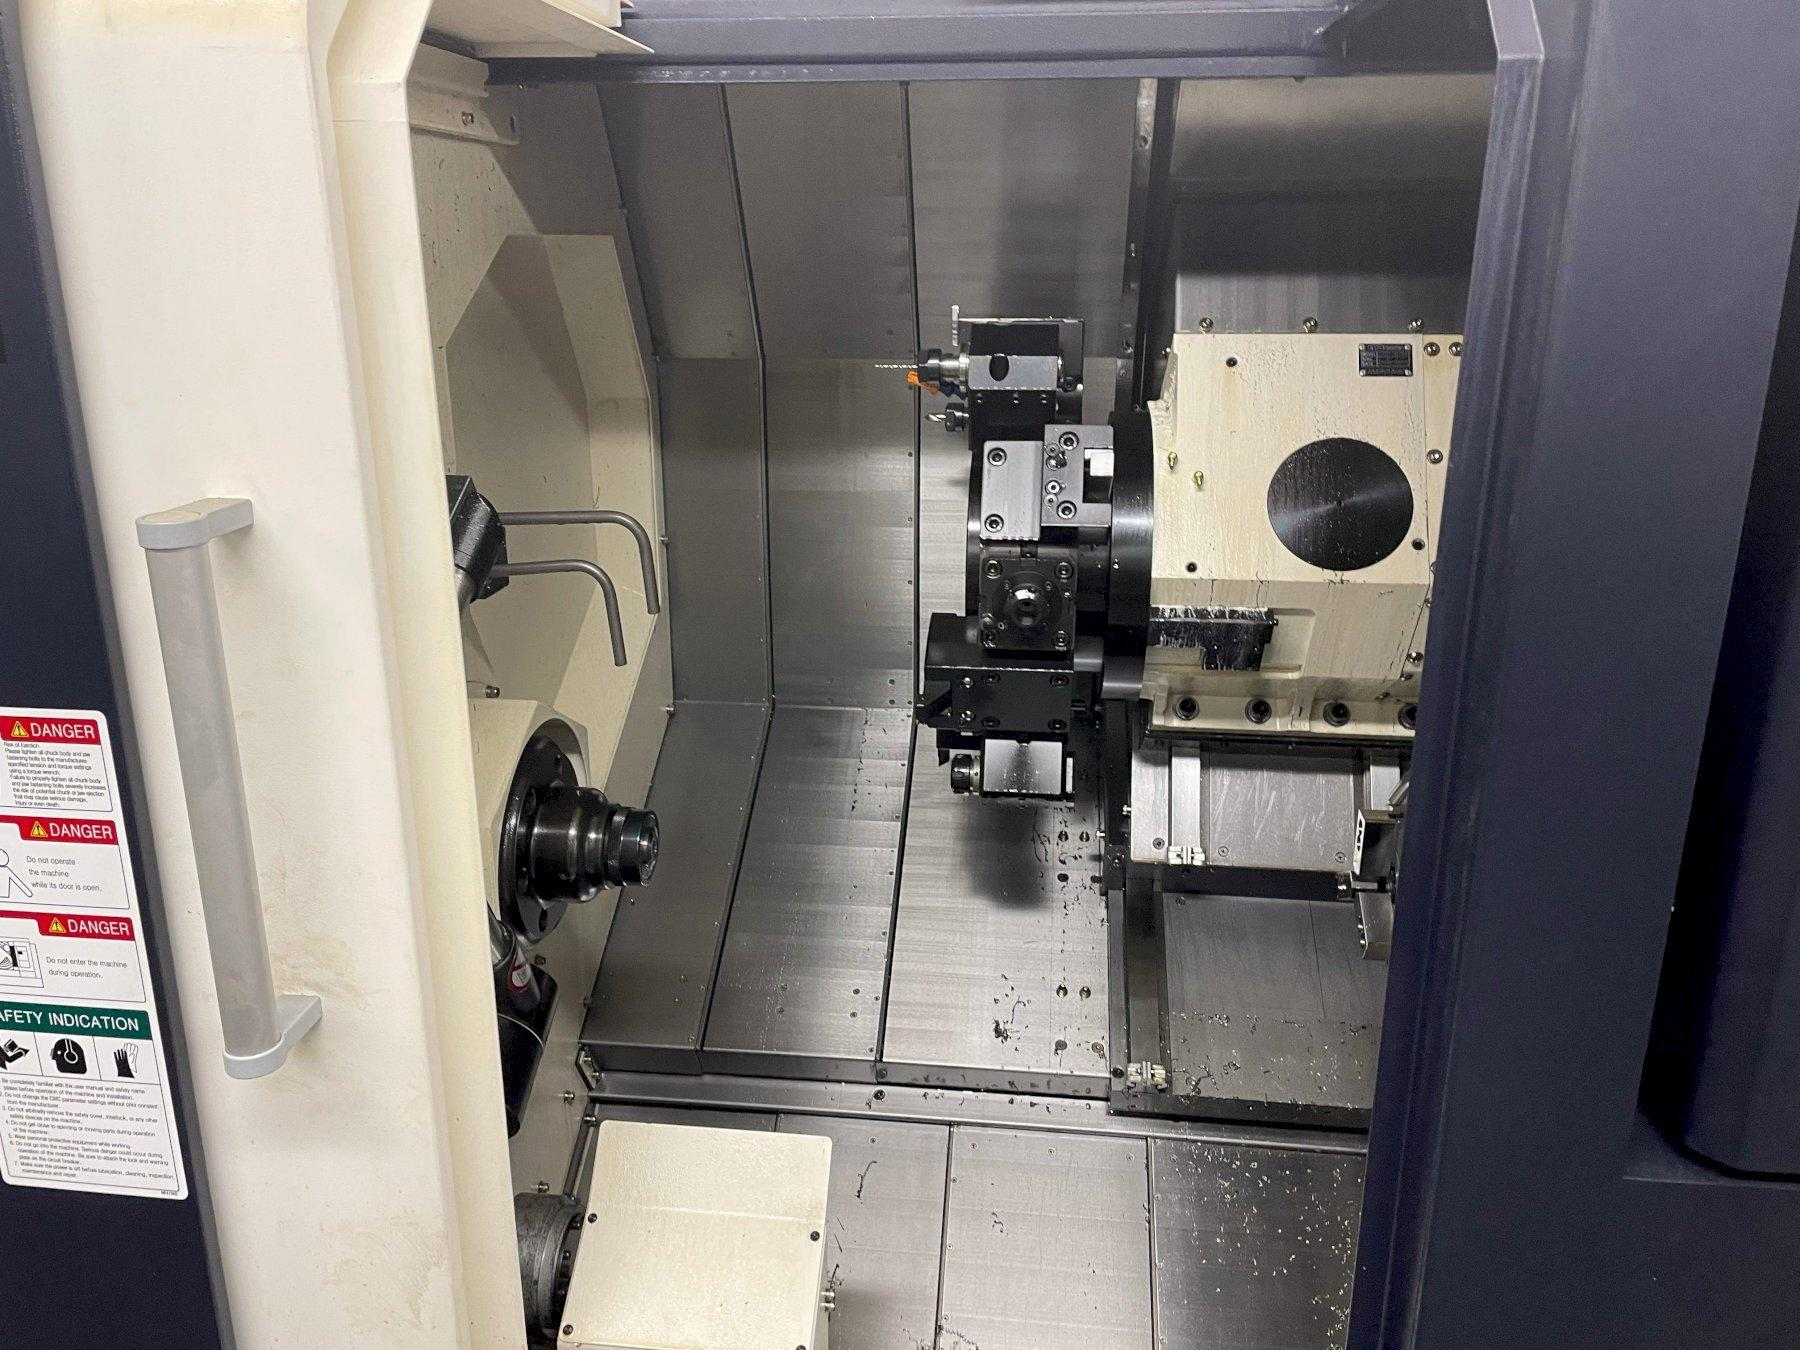 "Hwacheon Cutex-180BL YSMC Multi-Axis CNC Lathe 2018 with: Fanuc OiTF CNC Control, Horizontal Linear Guide, Slant Longbed, 8"" Chuck, Milling, Tool Presetter, High Pressure Pump, HTLD, Barfeed Interface, Rigid Tapping, Parts Catcher, and Chip Conveyor."